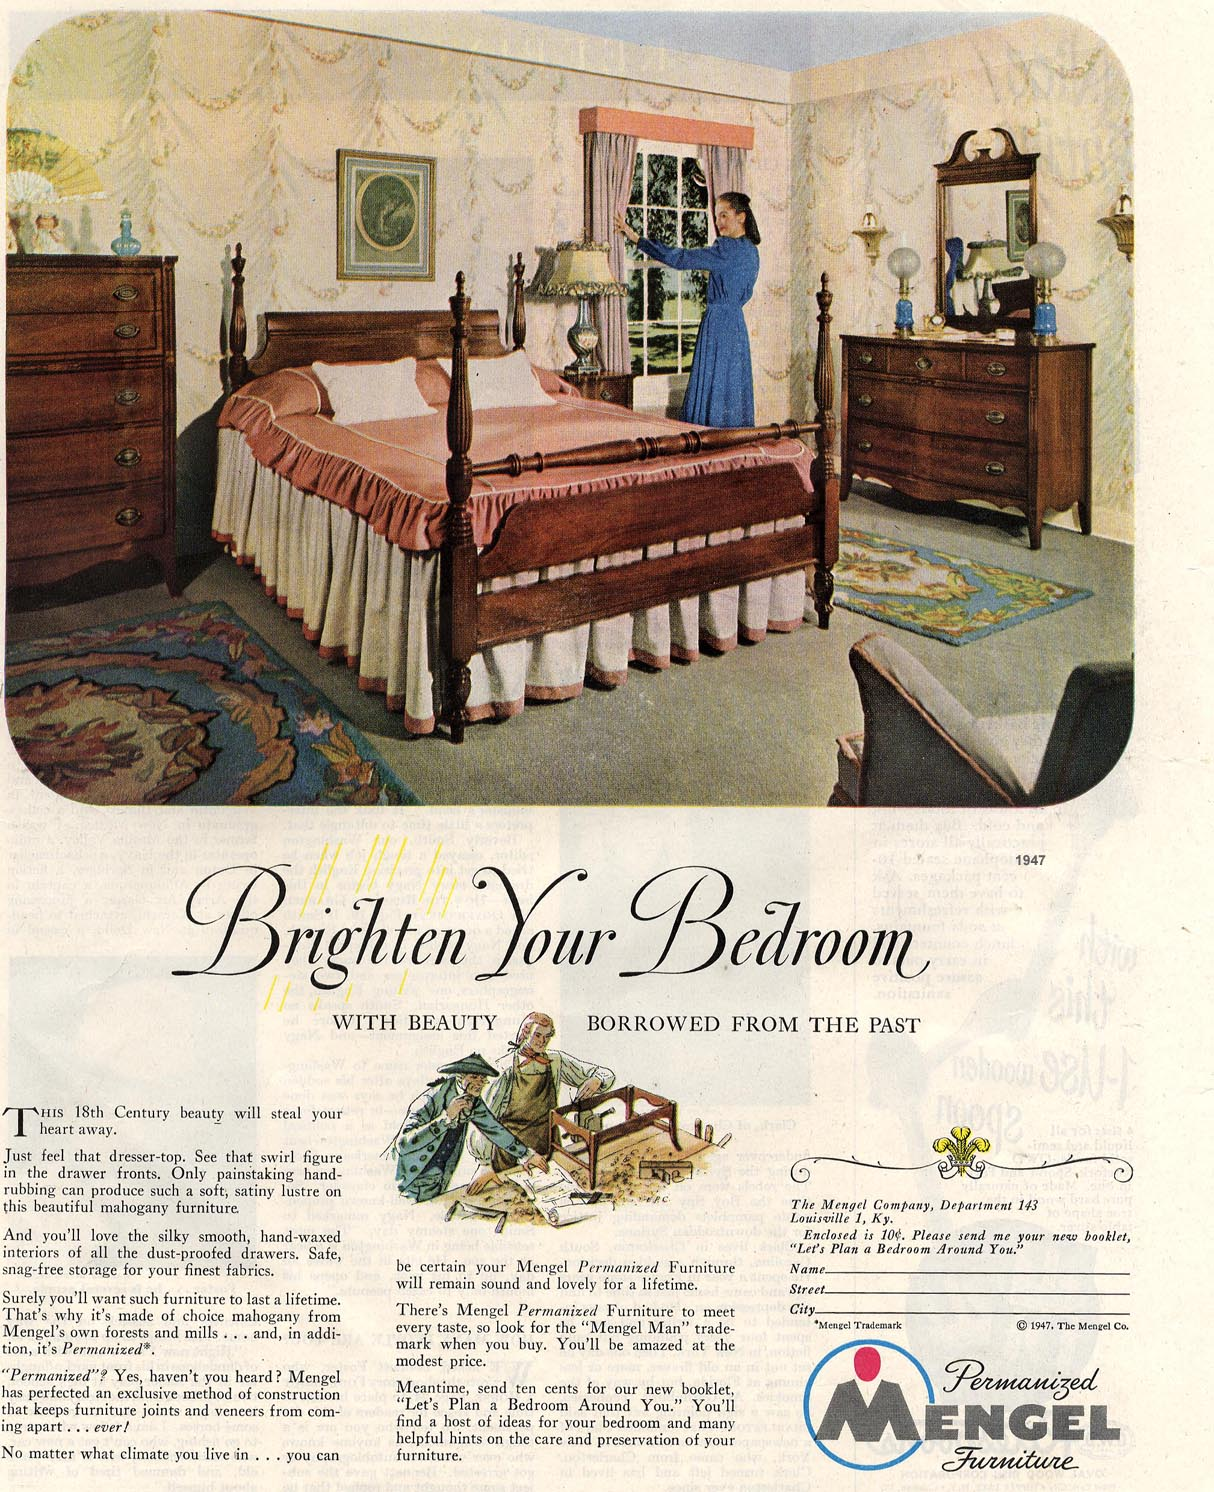 The Visual Primer Of Advertising Cliches Brighten Your Bedroom Mengel Furn